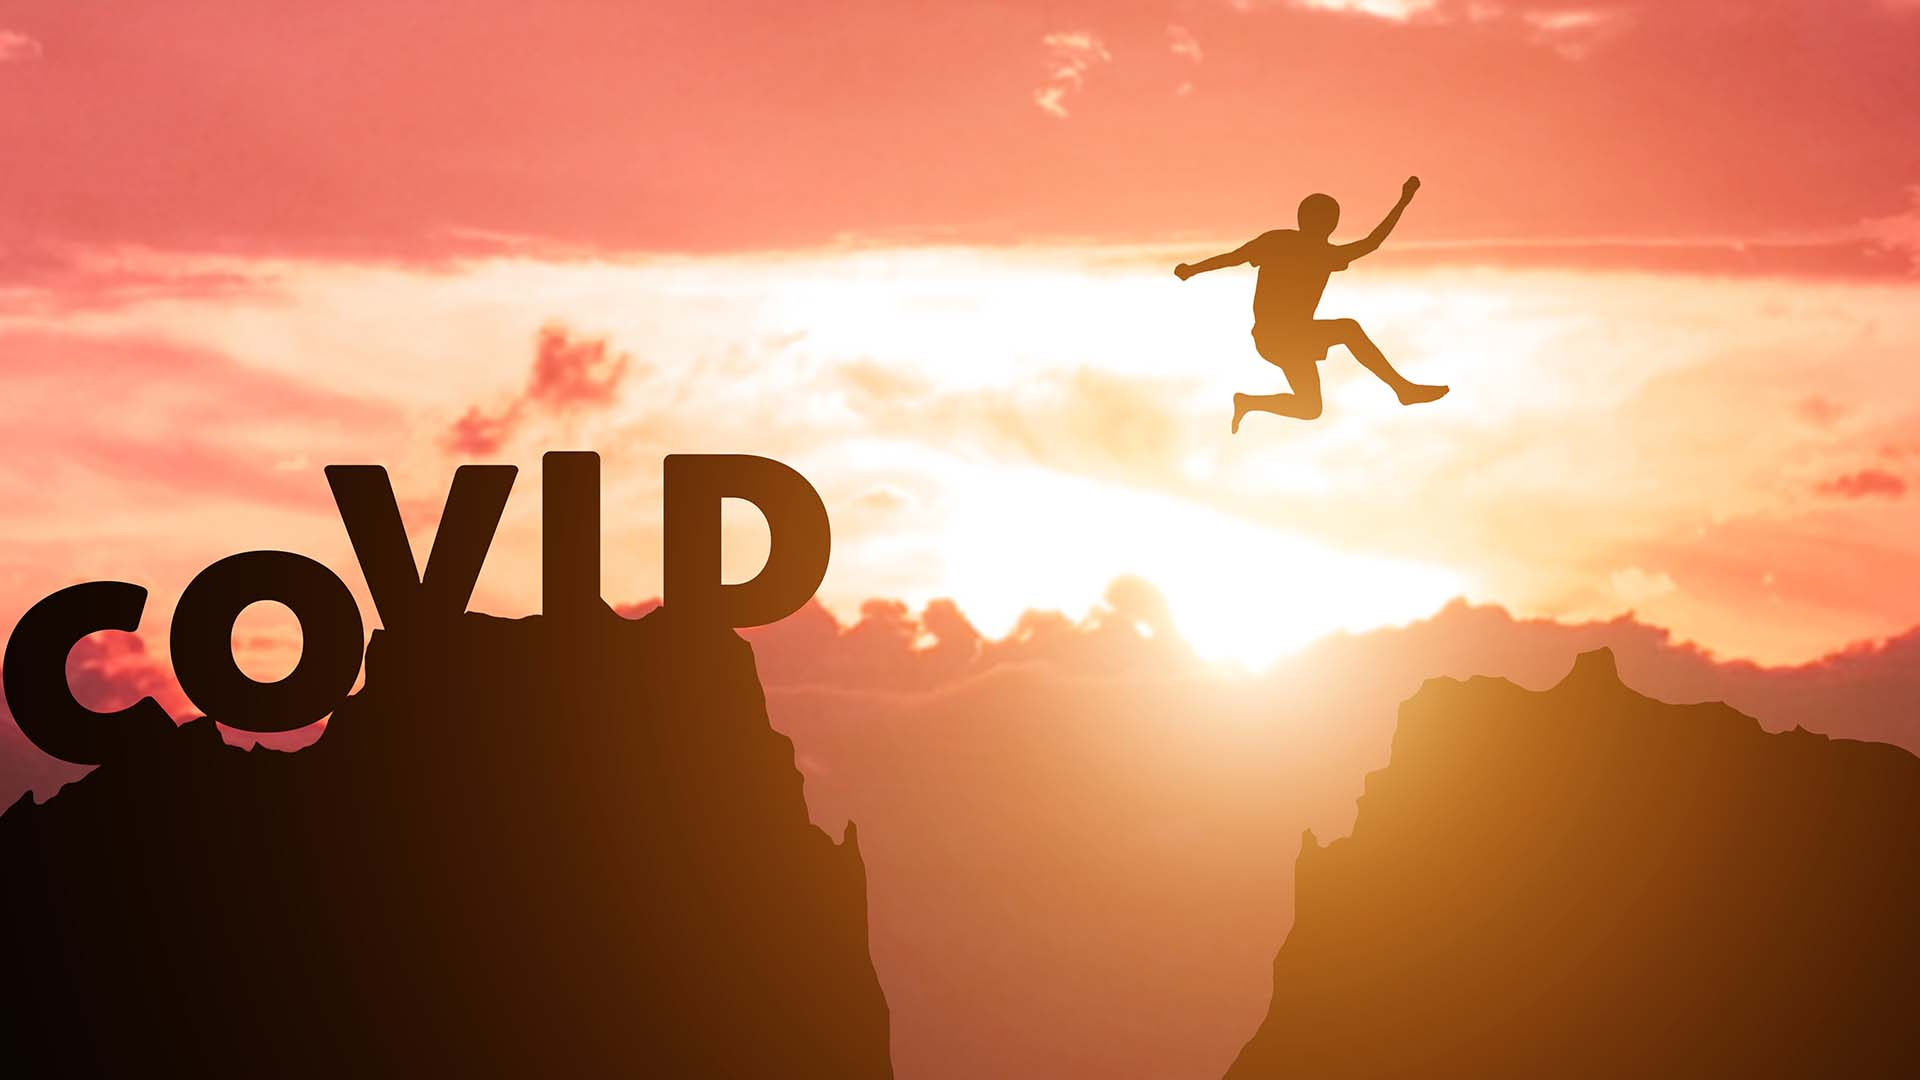 Perseverance - A silhouette of a person jumping from one mountain peak to another with a sunset in the background